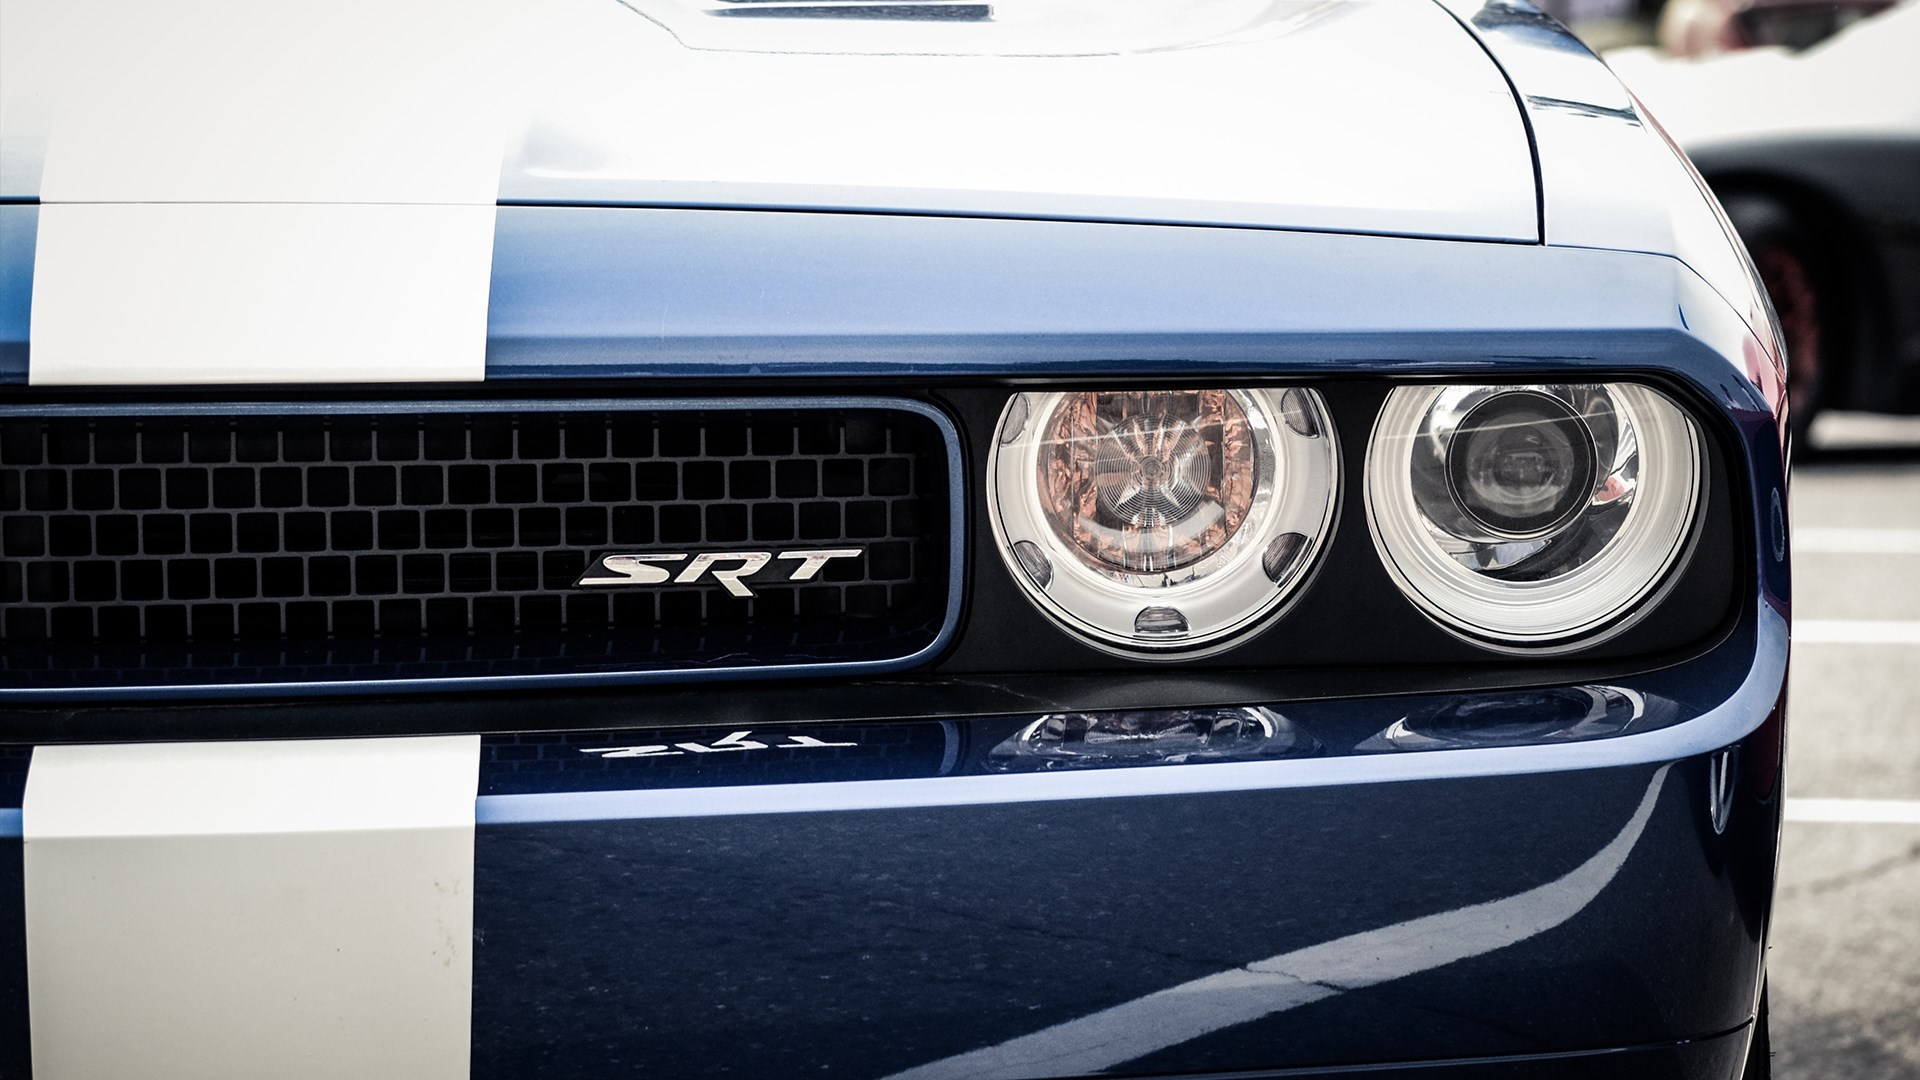 close-up dodge challenger srt wallpaper | 1920x1080 | #16510